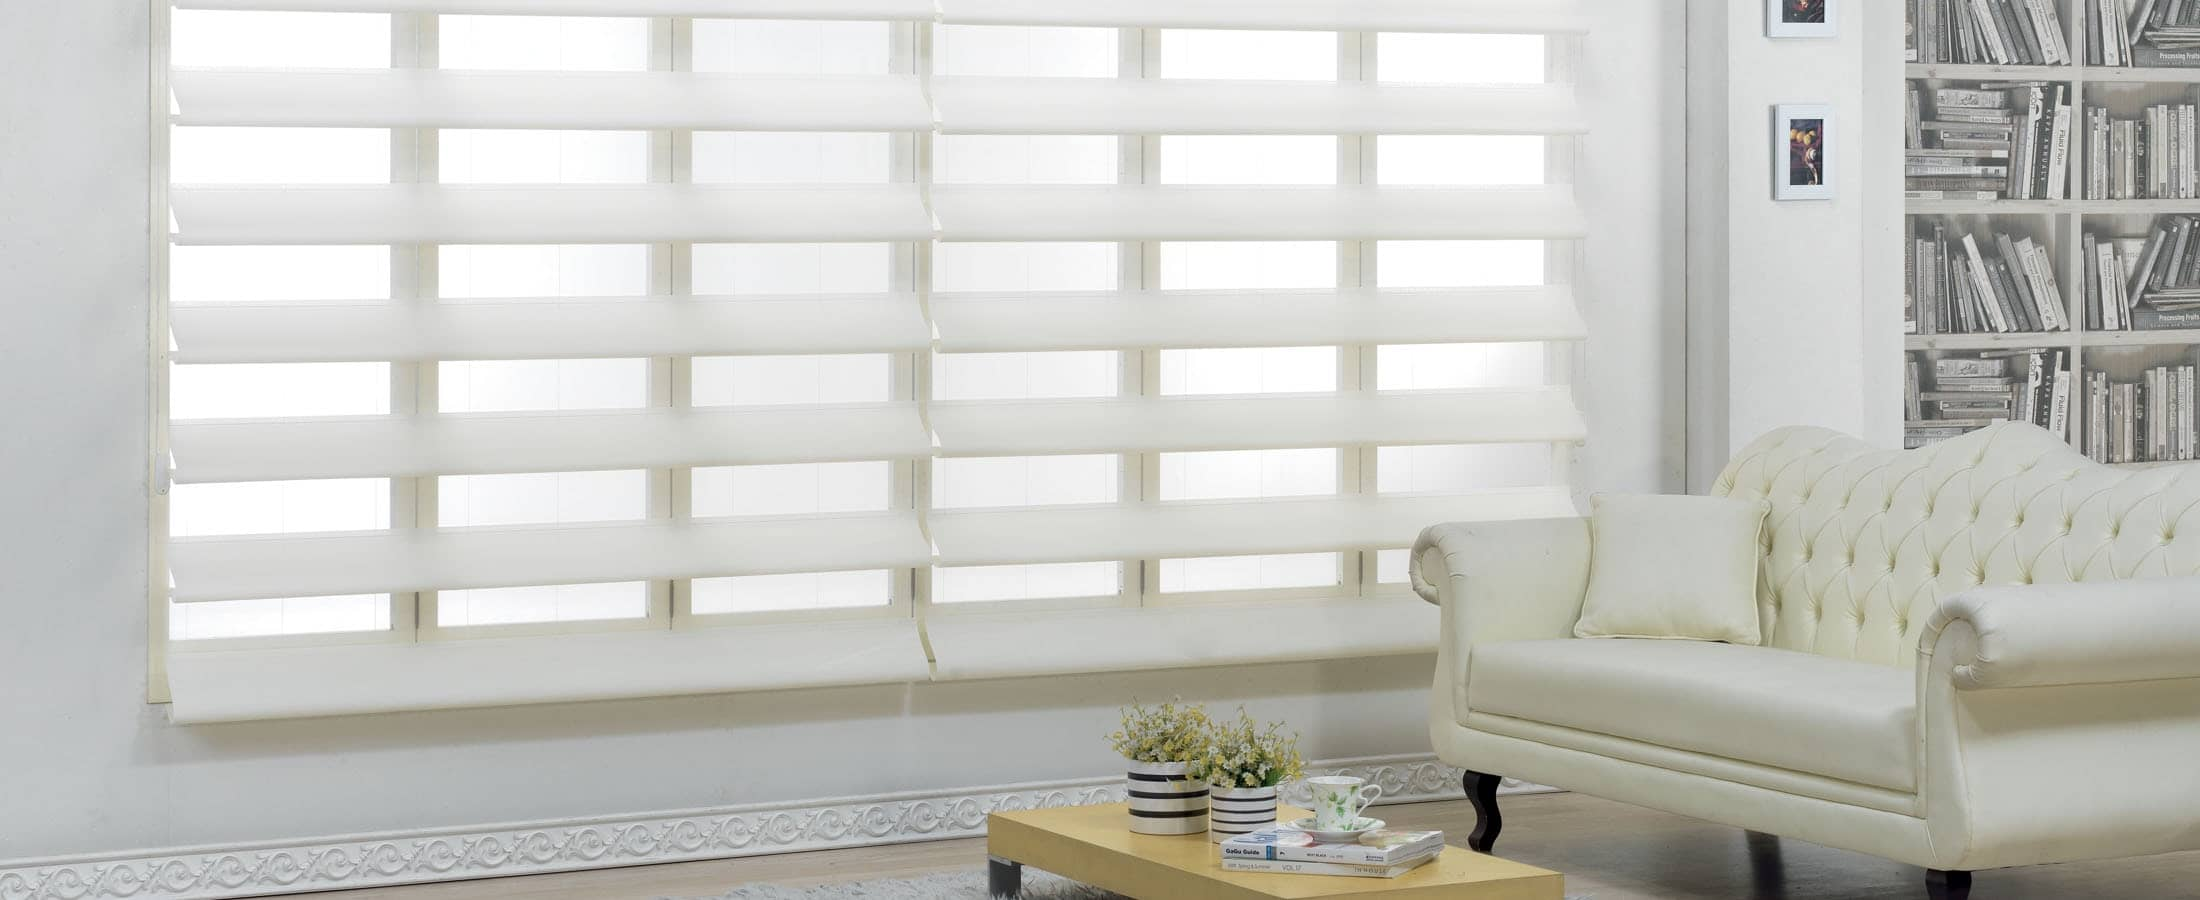 Ares Blinds in White Living Room